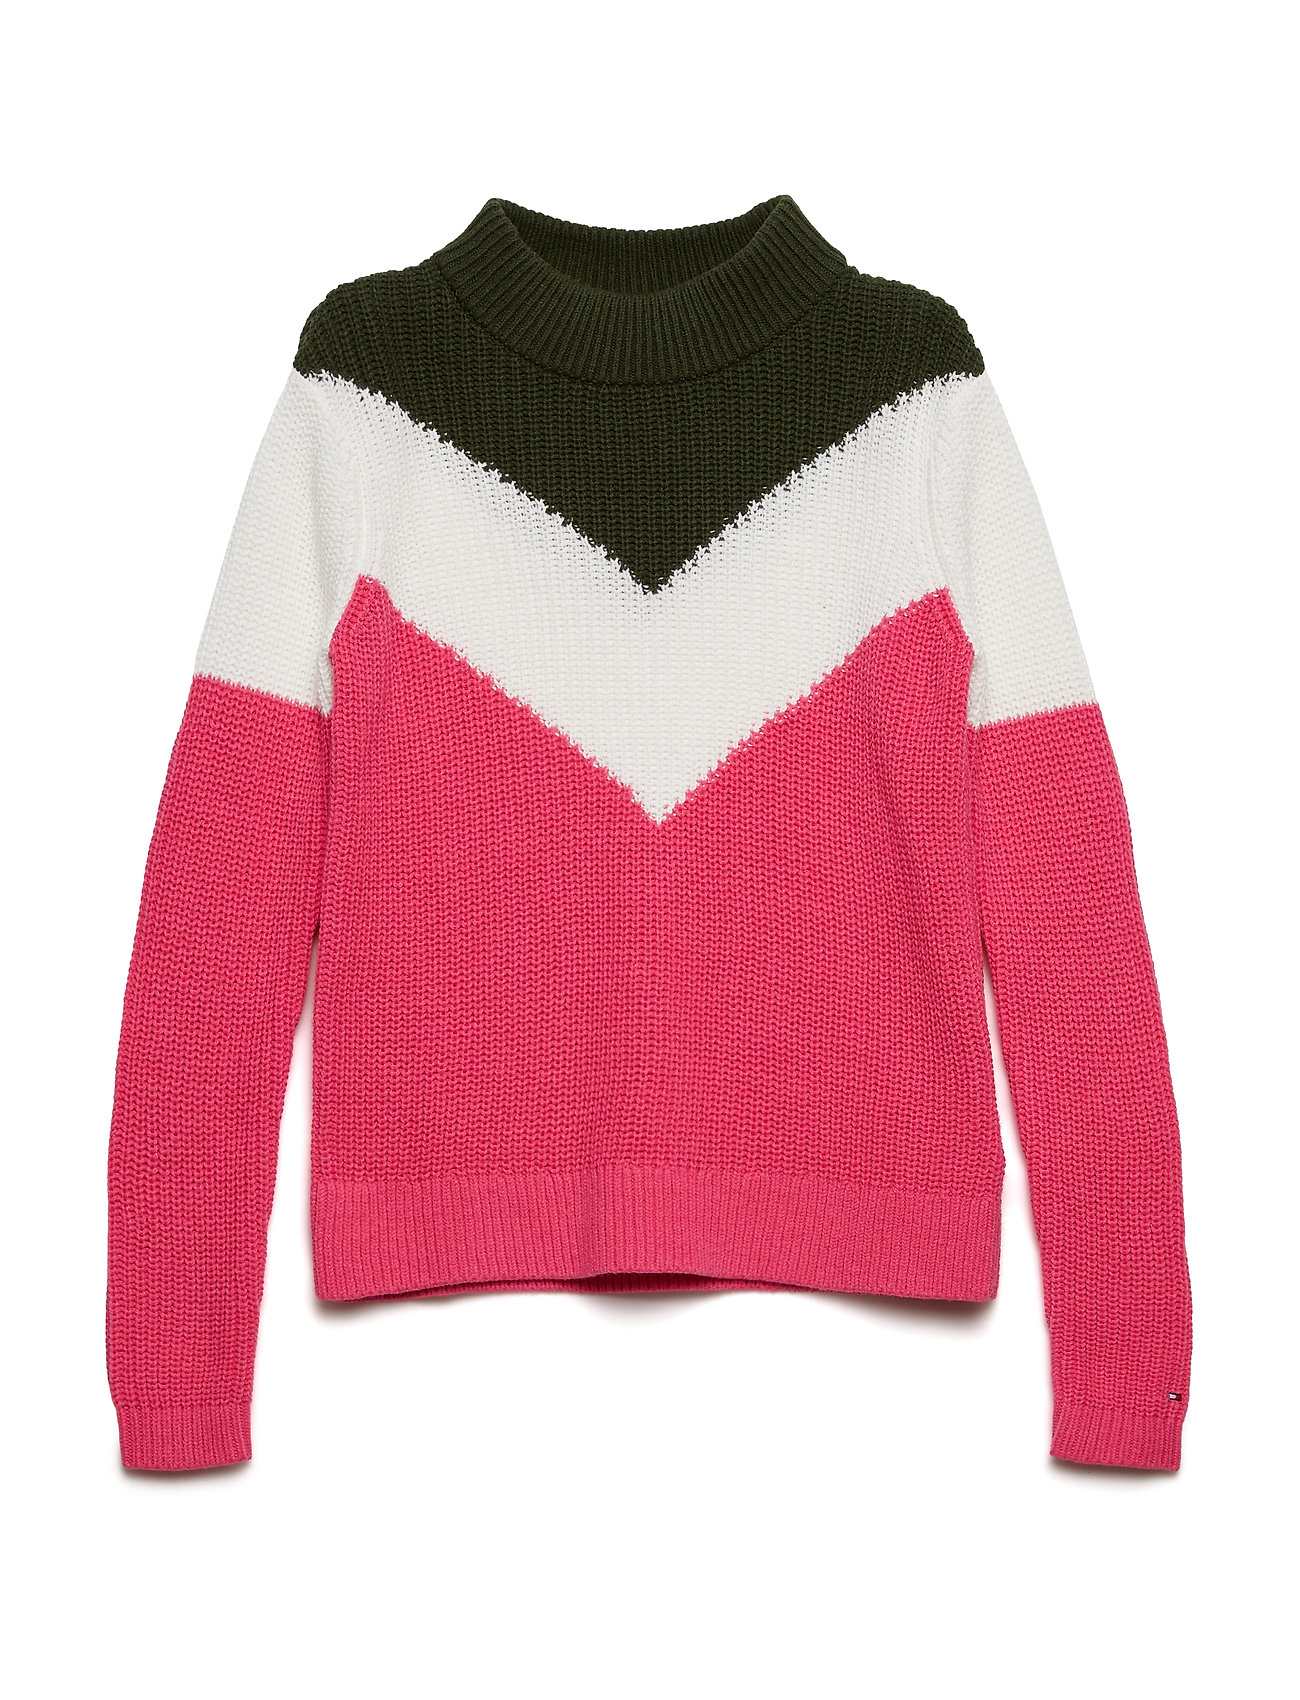 Tommy Hilfiger CHEVRON COLOR BLOCK SWEATER - PINK FLAMBE/MULTI